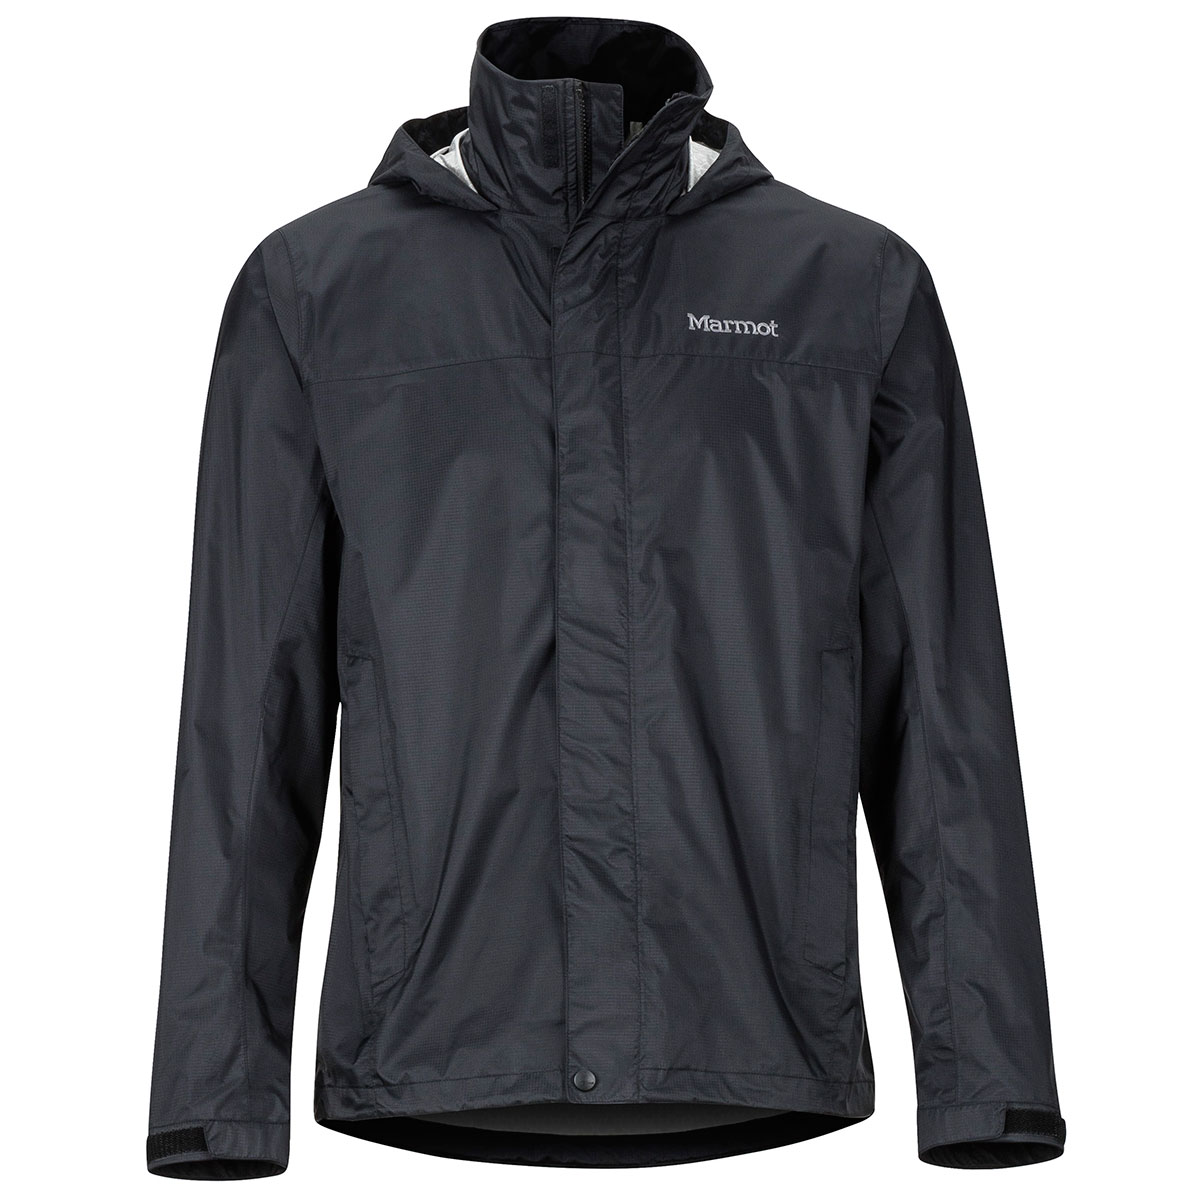 Marmot Men's Precip Eco Jacket - Black, XXL